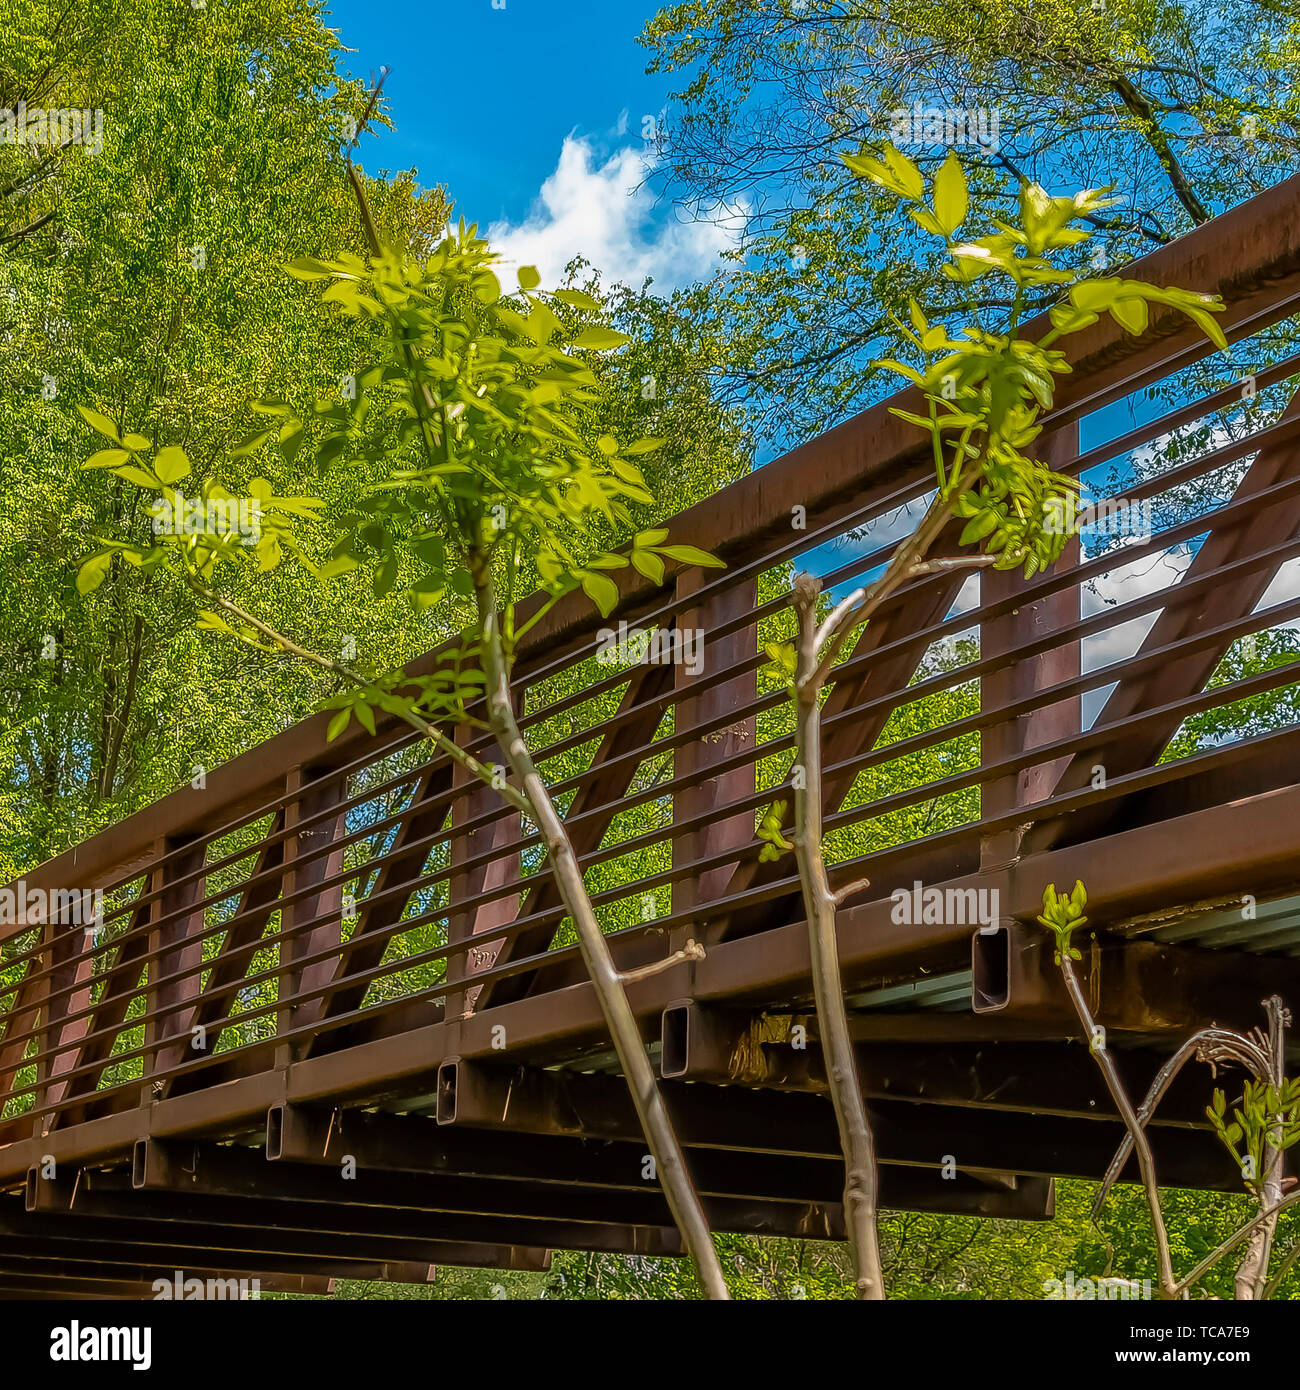 Square Bridge with metal guardrails over the glistening water at Ogden River Parkway - Stock Image